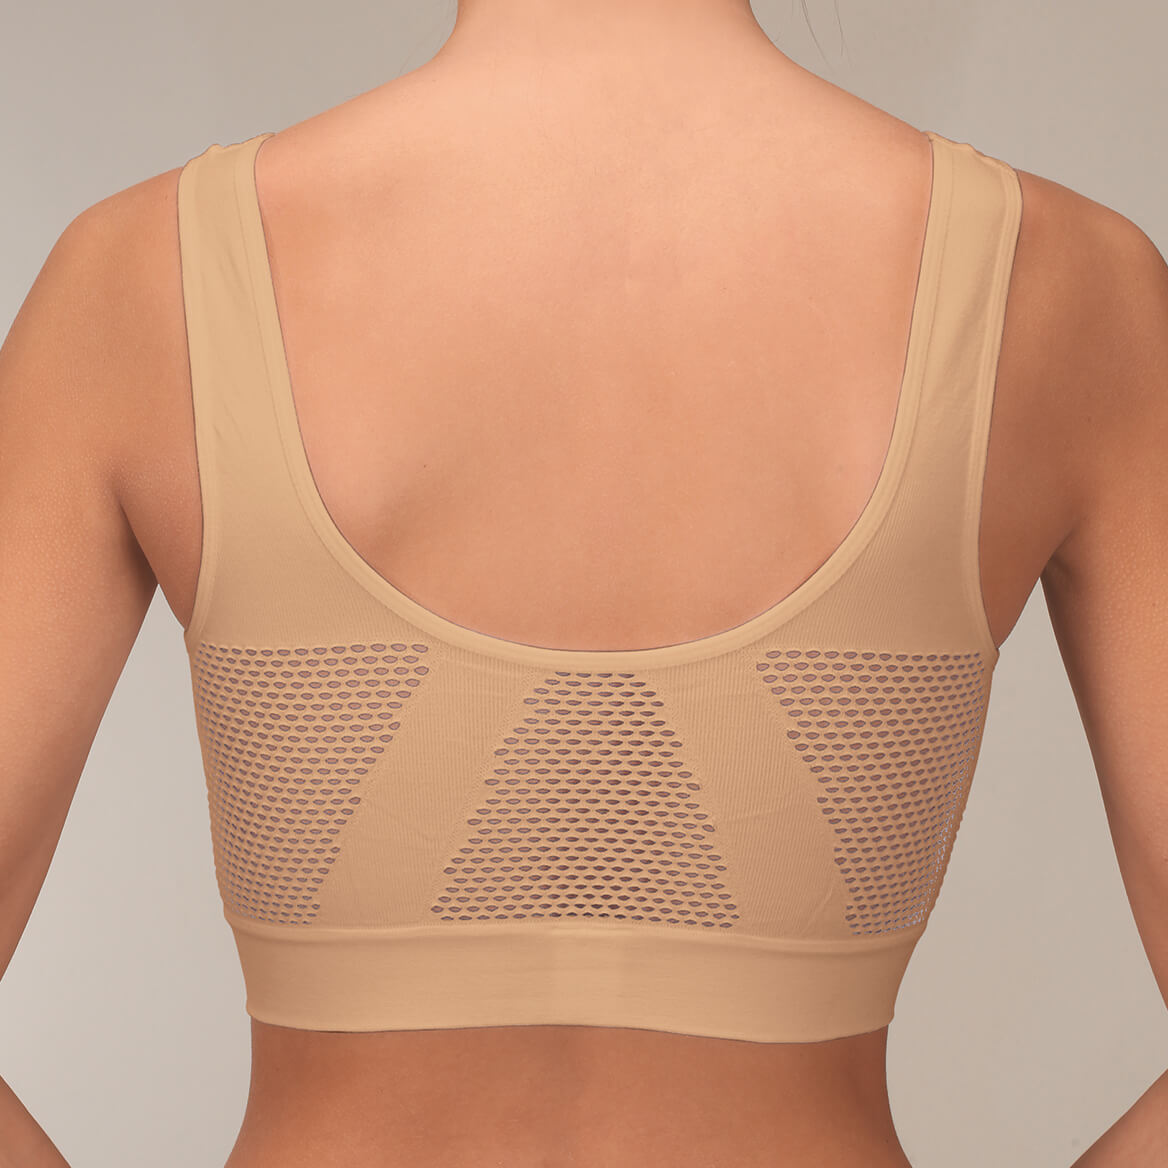 Easy Comforts Style™ Mesh Cooling Comfort Bra-355102